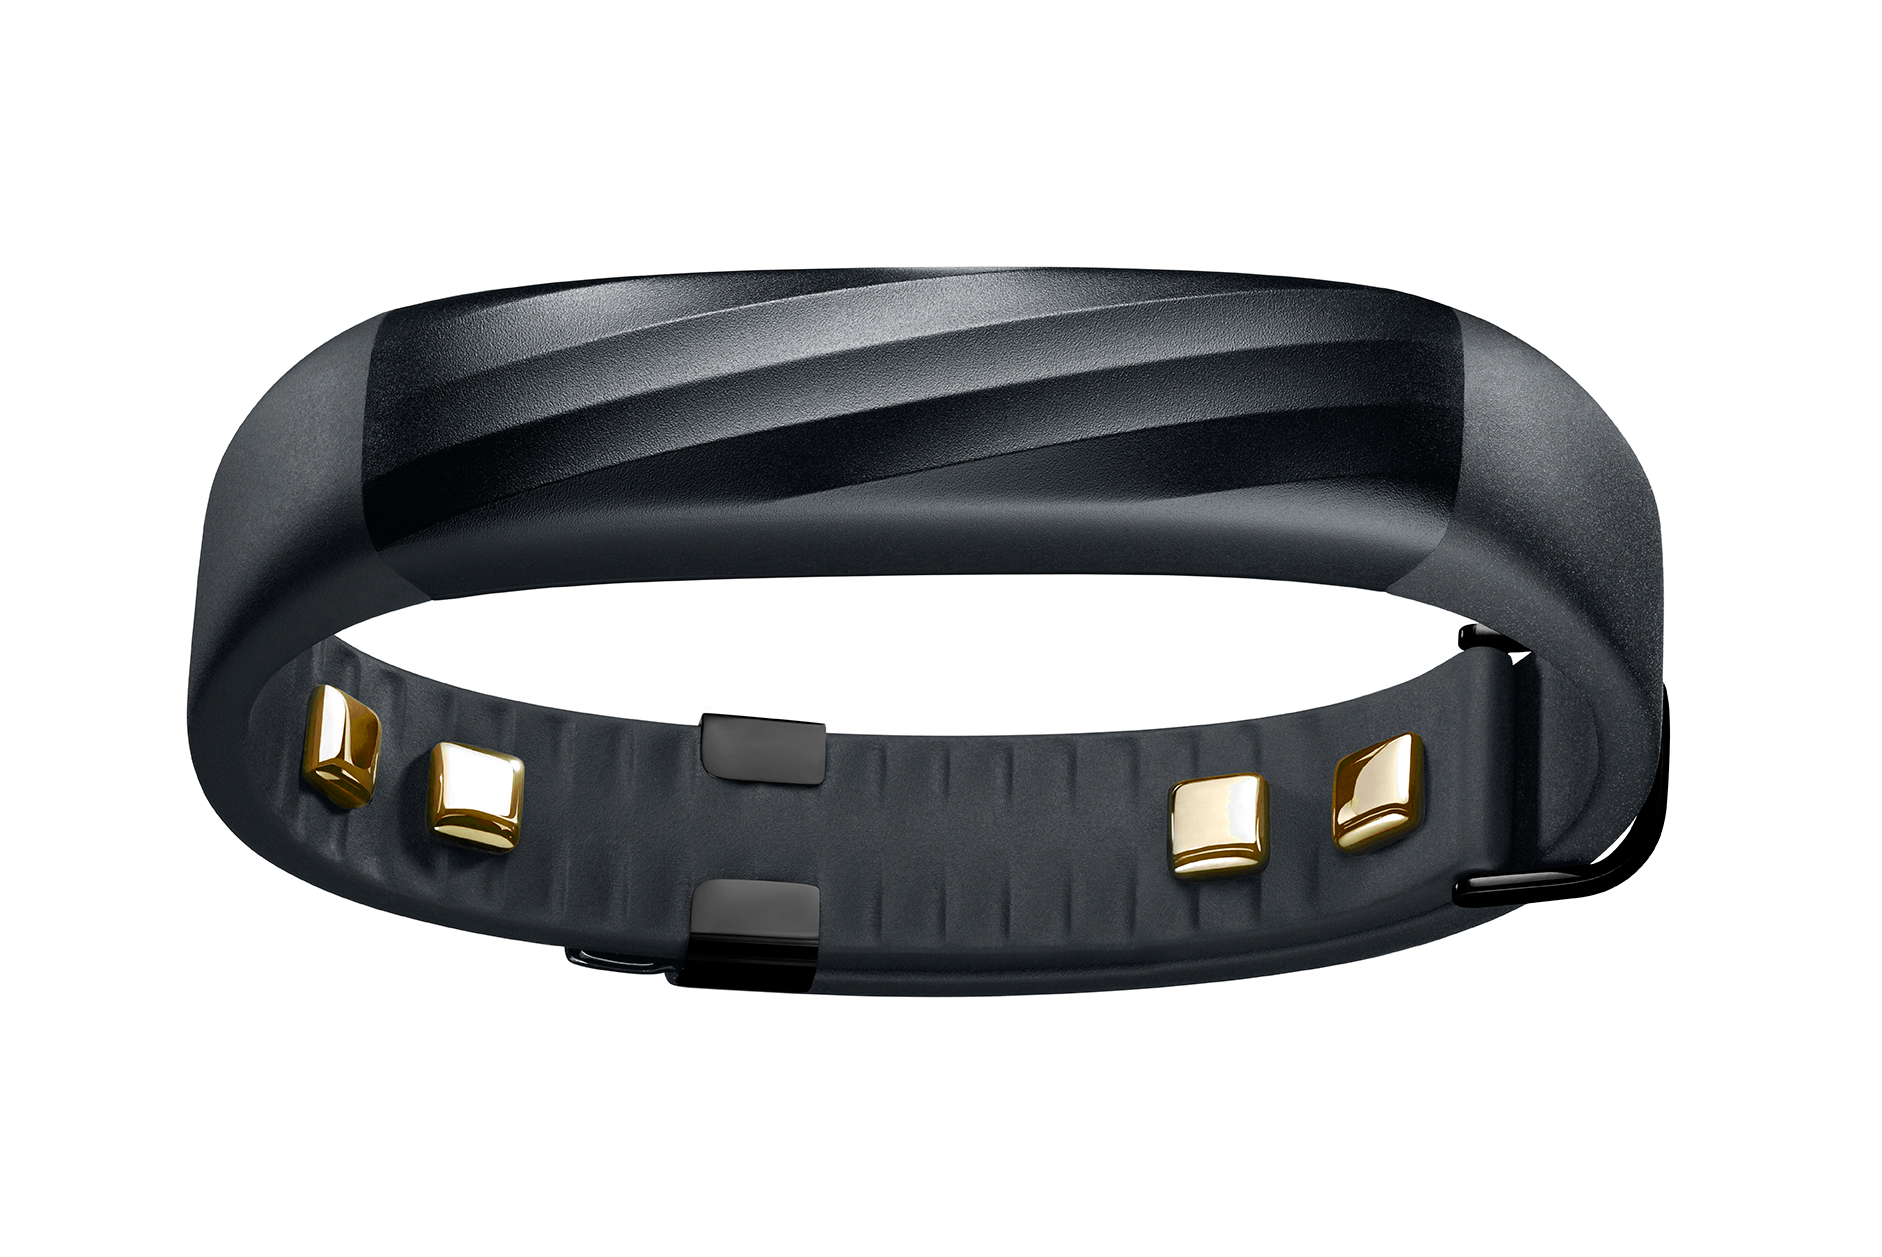 Jawbone tackles mobile payments with UP4 fitness tracker ...